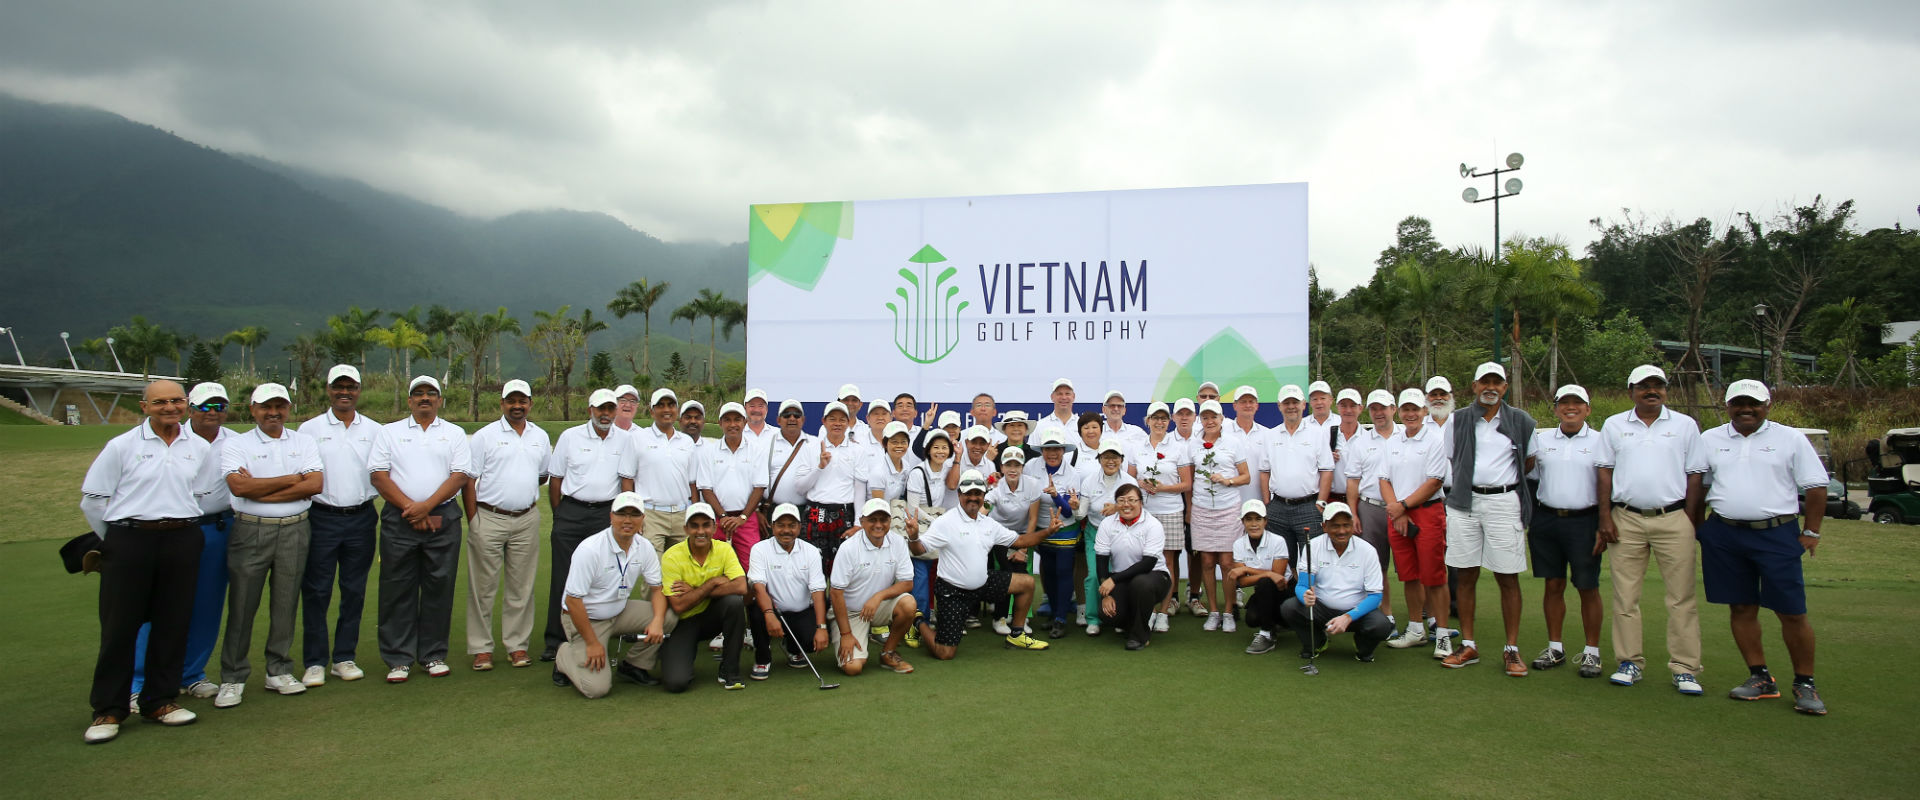 Vietnam-Golf-Trophy-Danang-2017